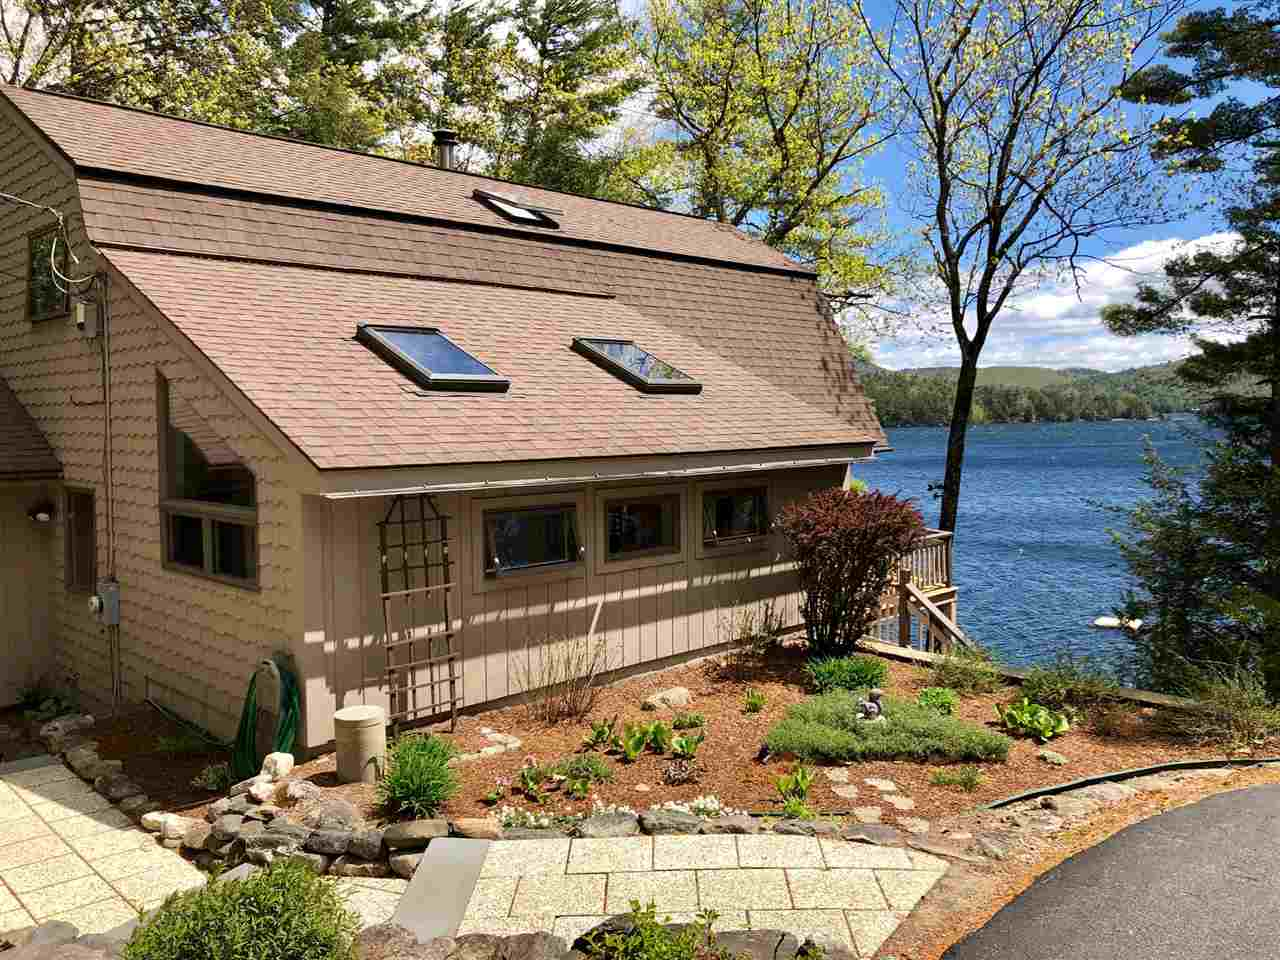 Lake Merrymeeting waterfront home for sale in New Durham